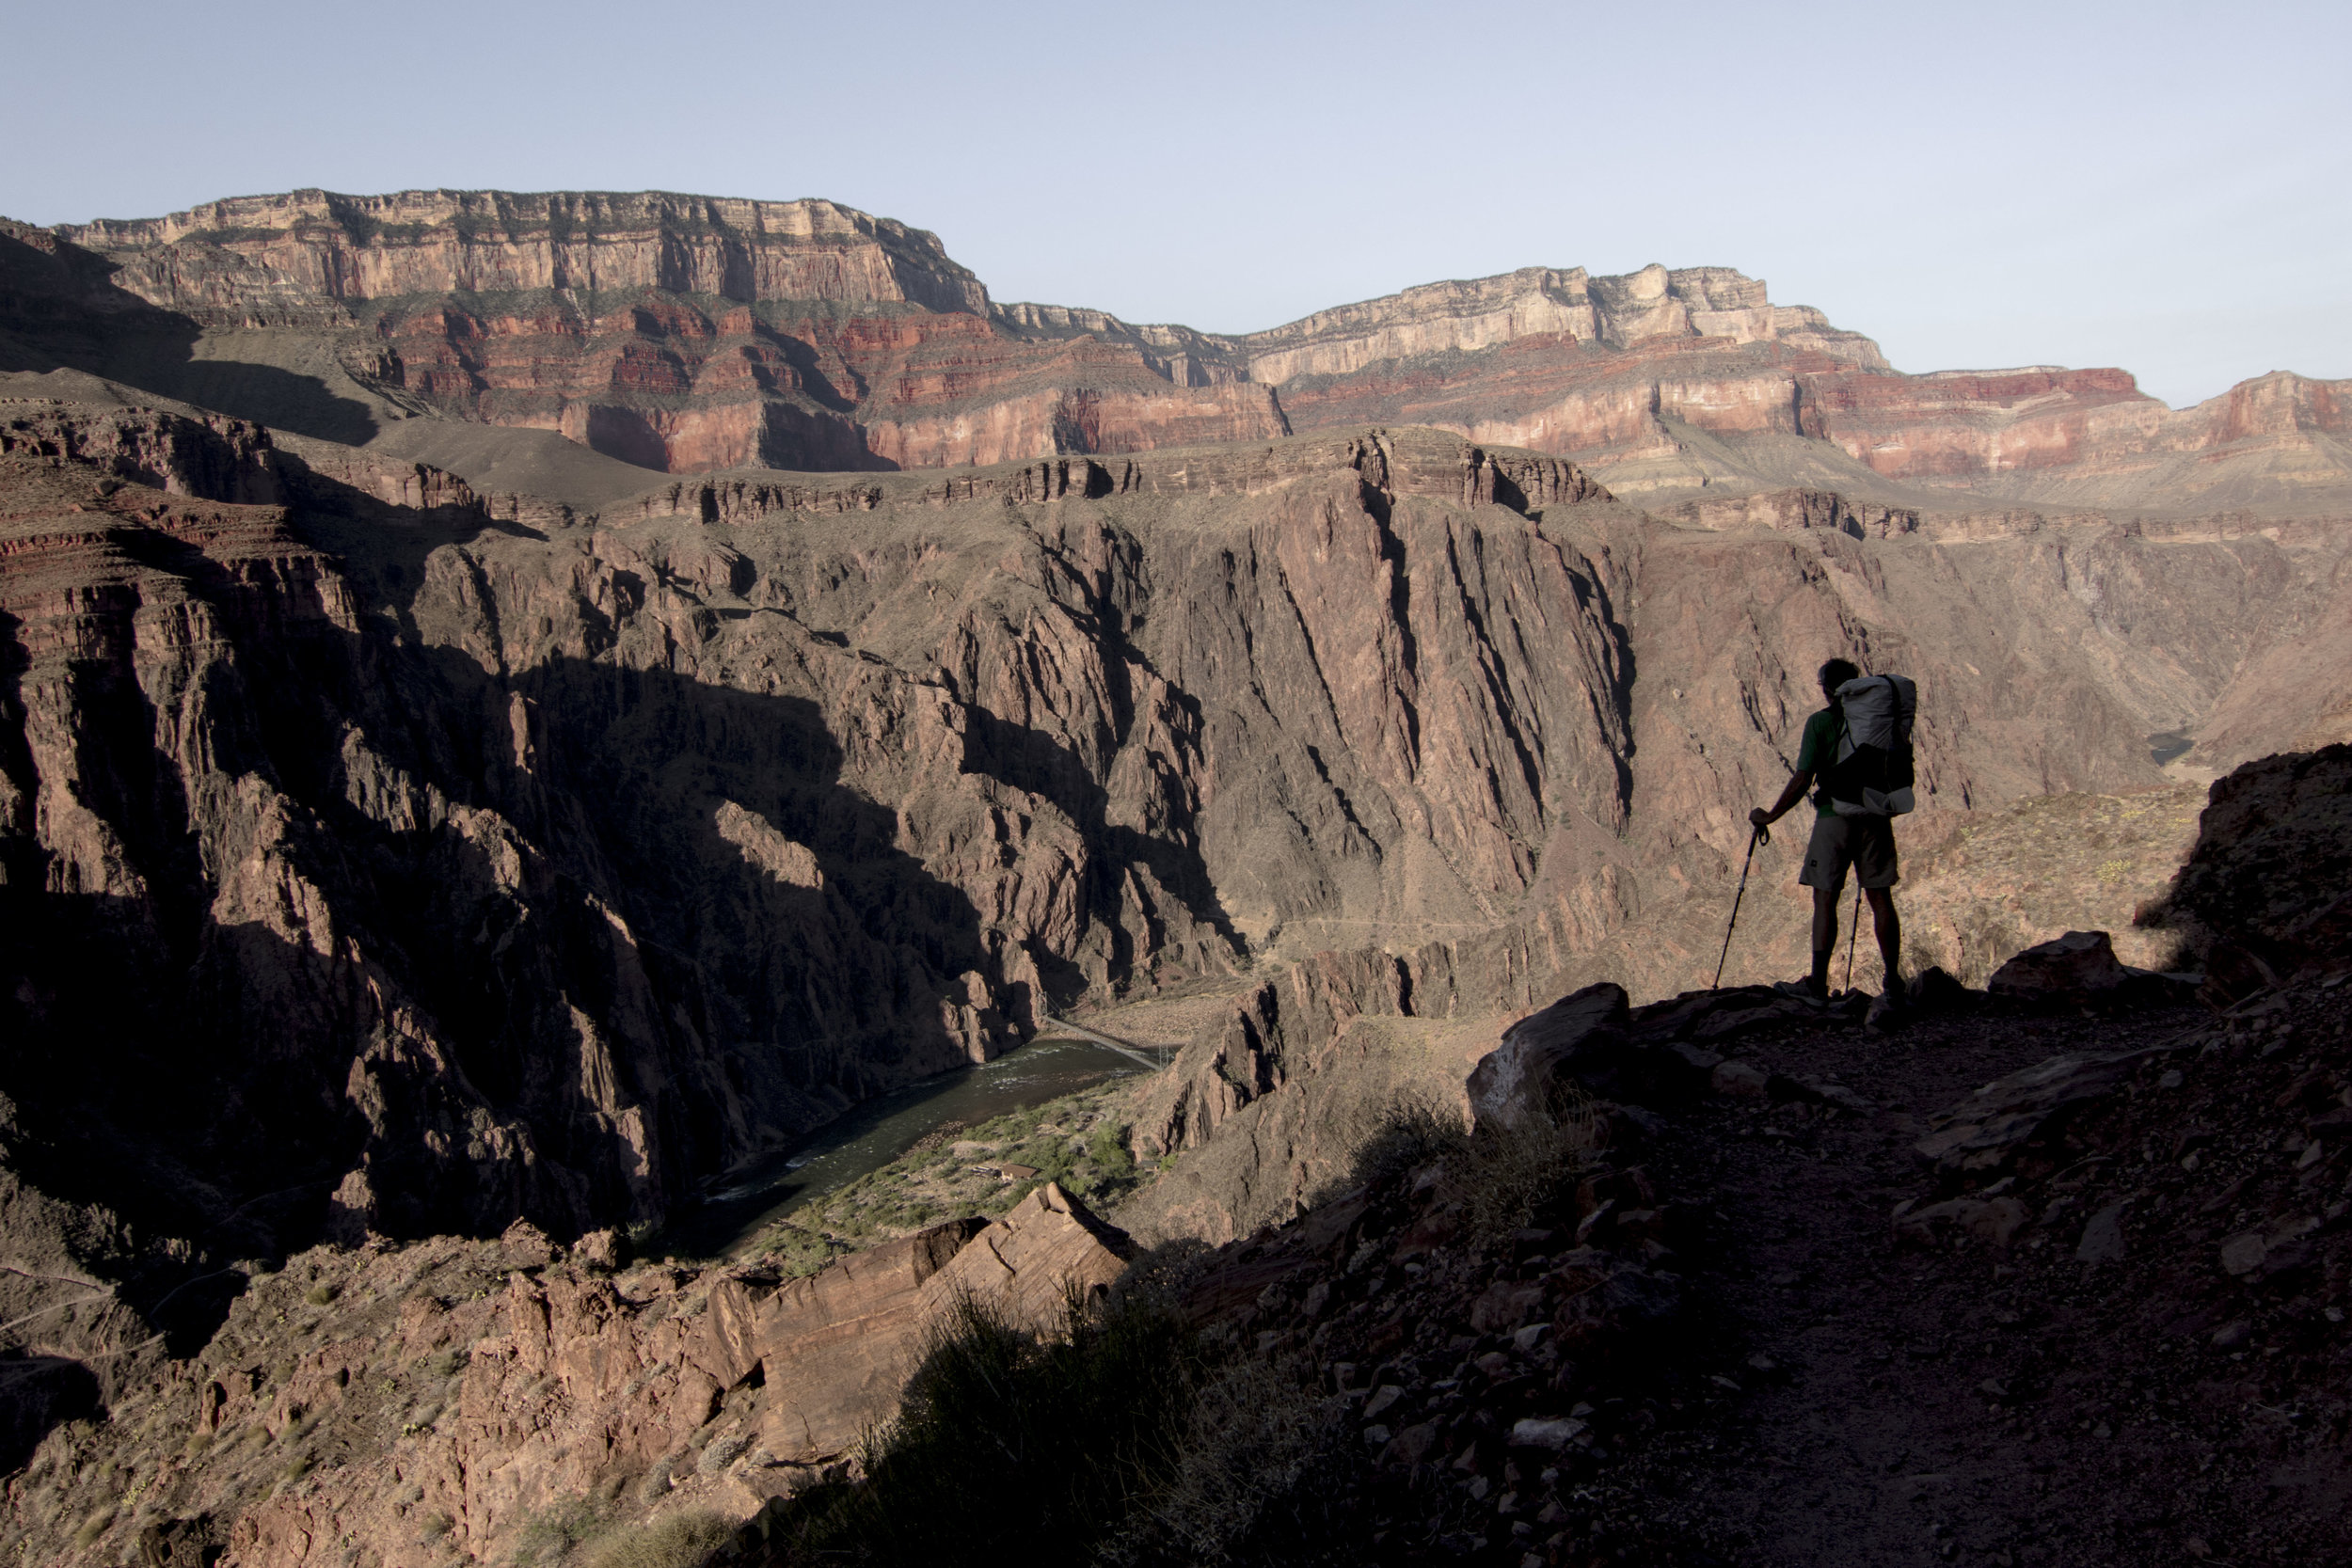 Looking down on the Colorado River;the rim is 3000ft above us at this point